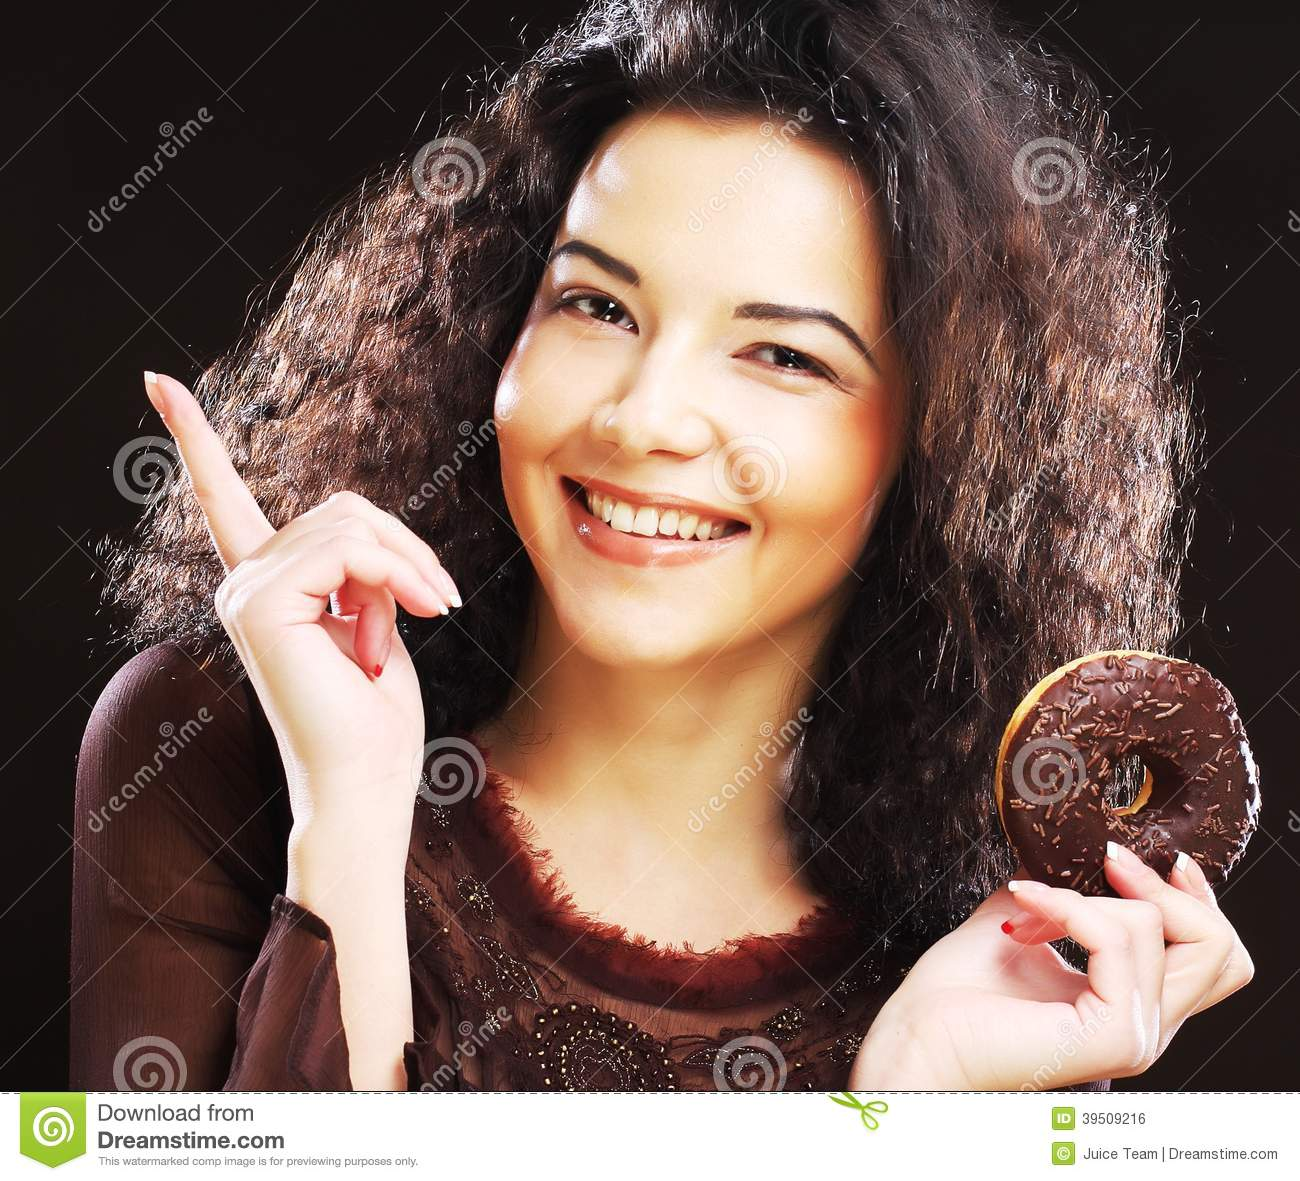 Woman holding a donut